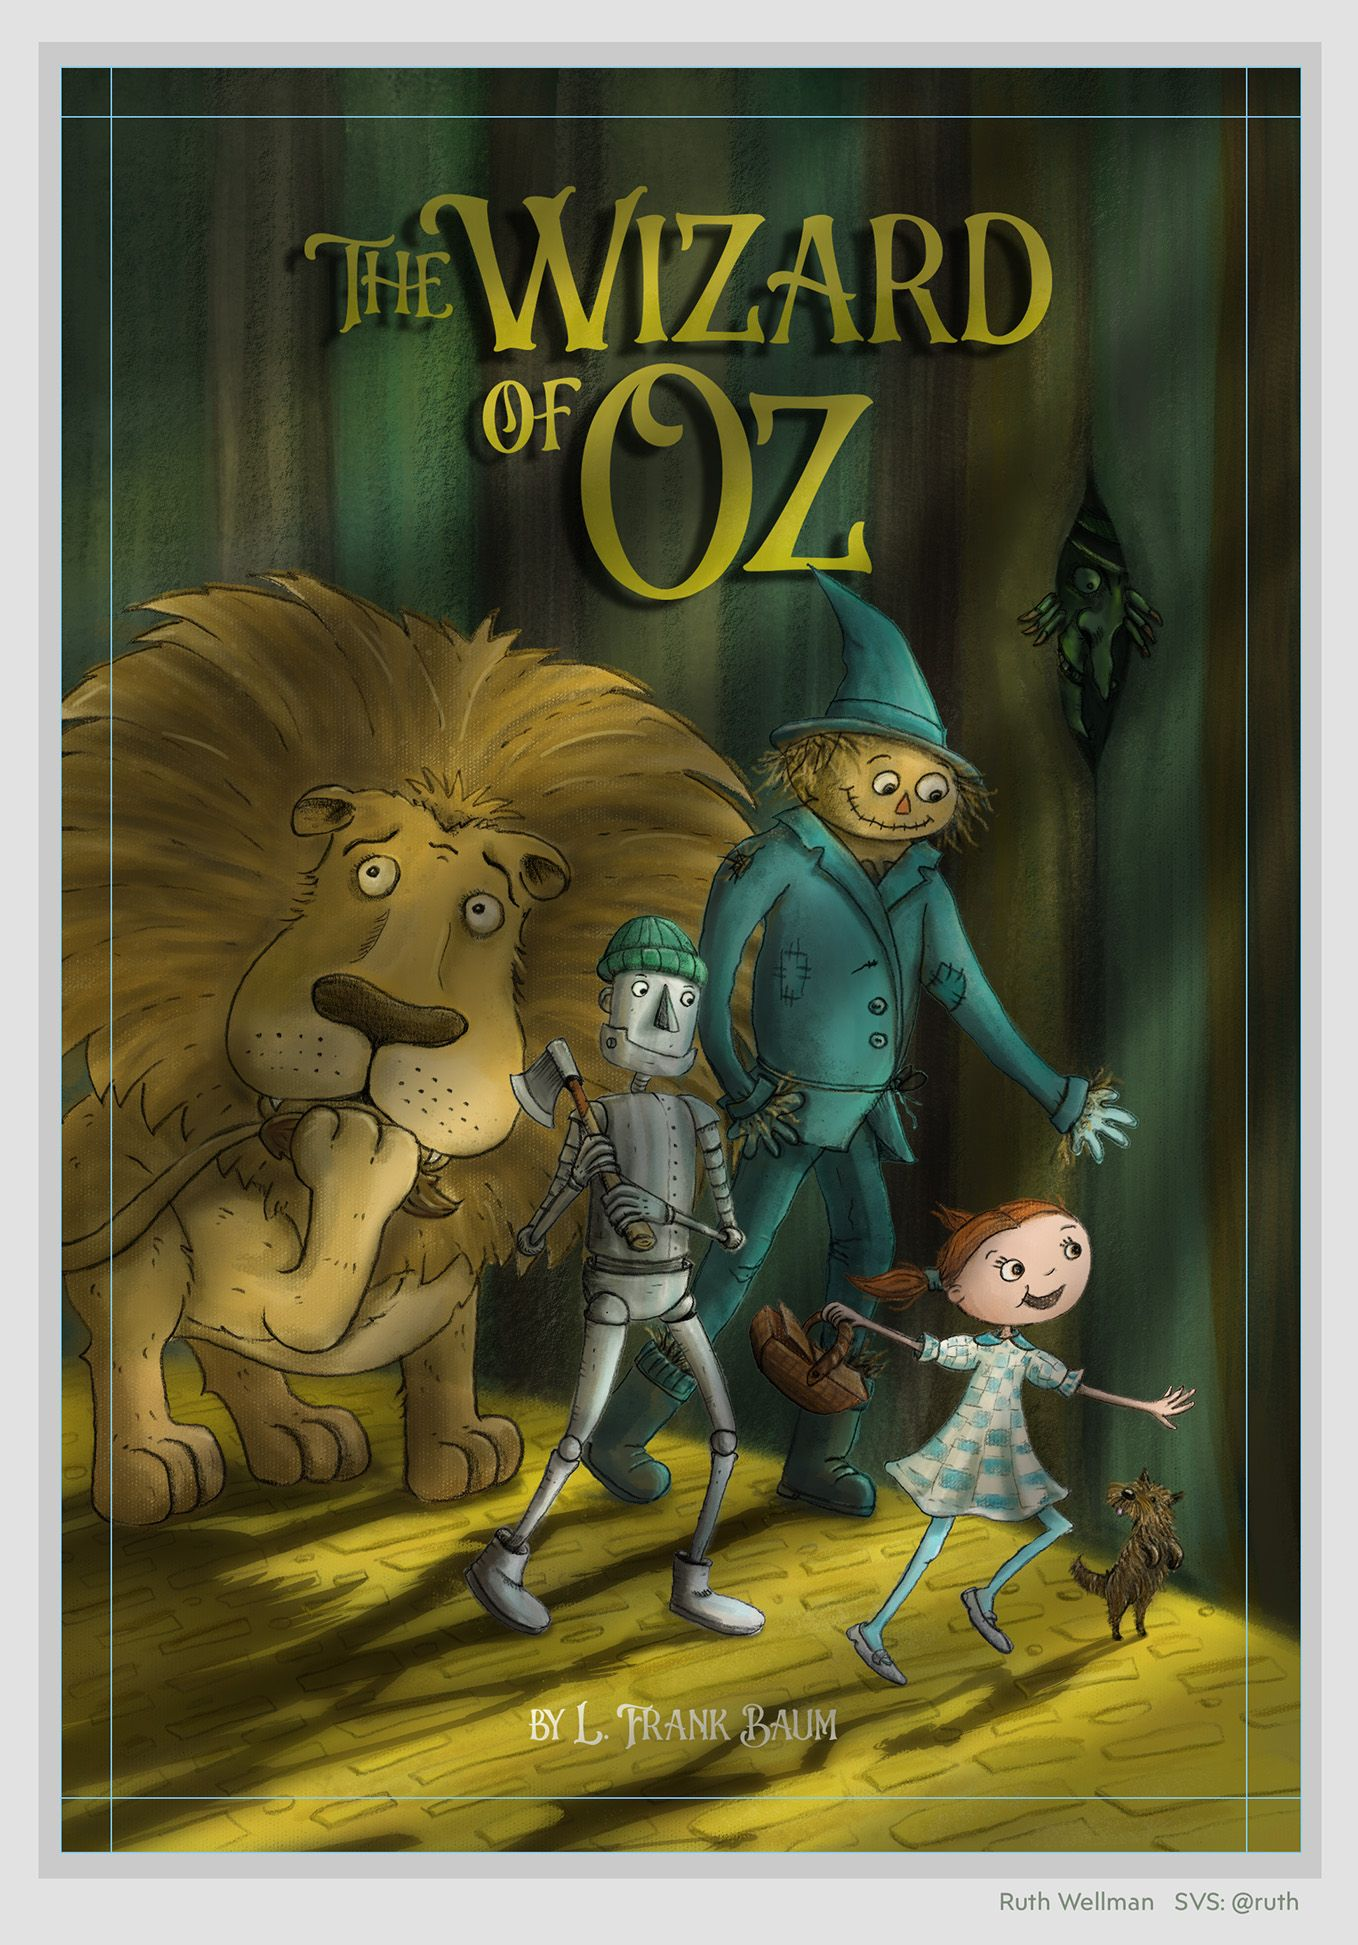 SVS-The-Wizard-of-Oz-cover-ruth.jpg